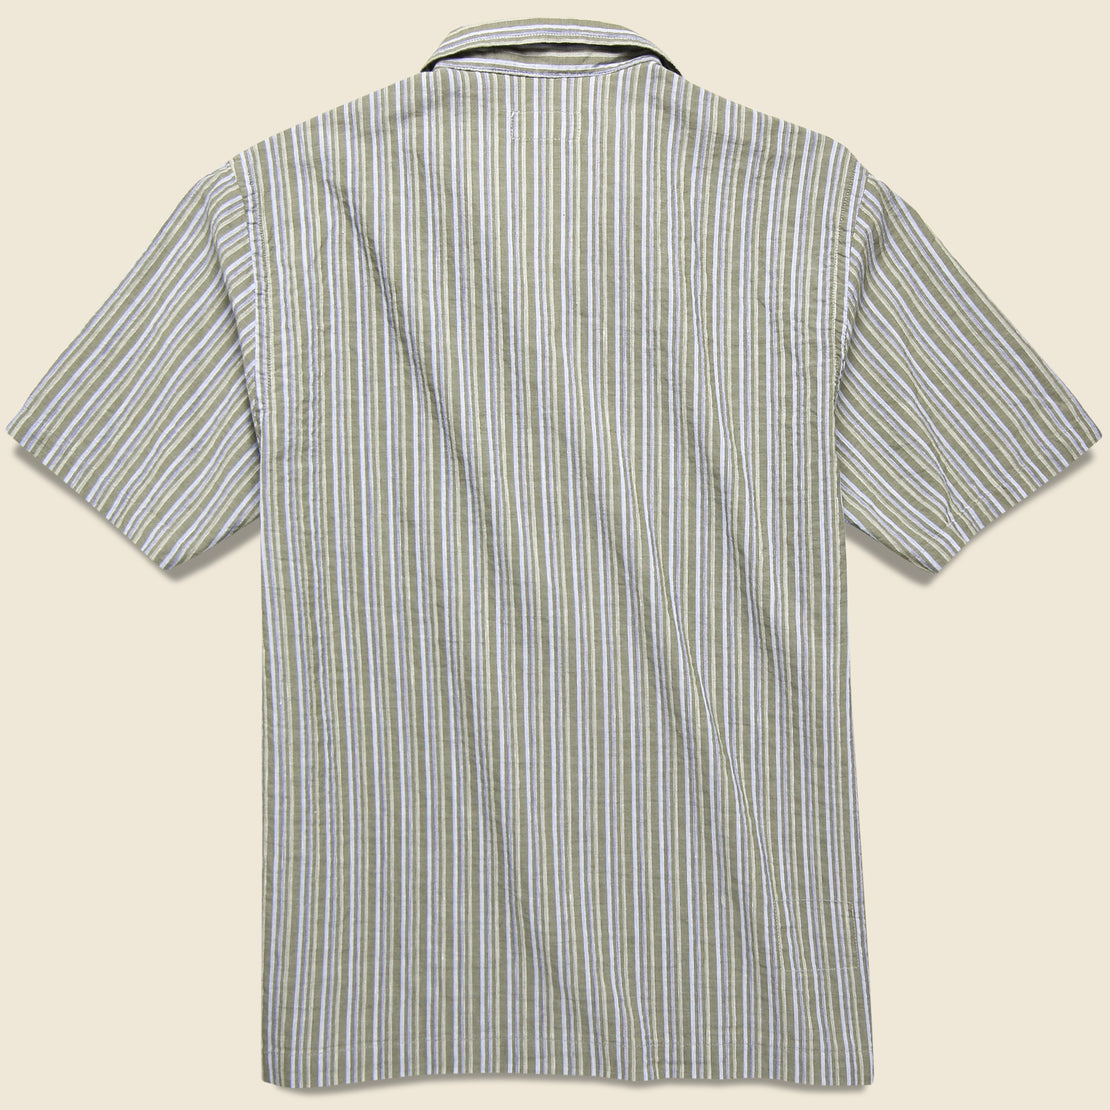 Road Shirt - Olive Elton 2 Stripe